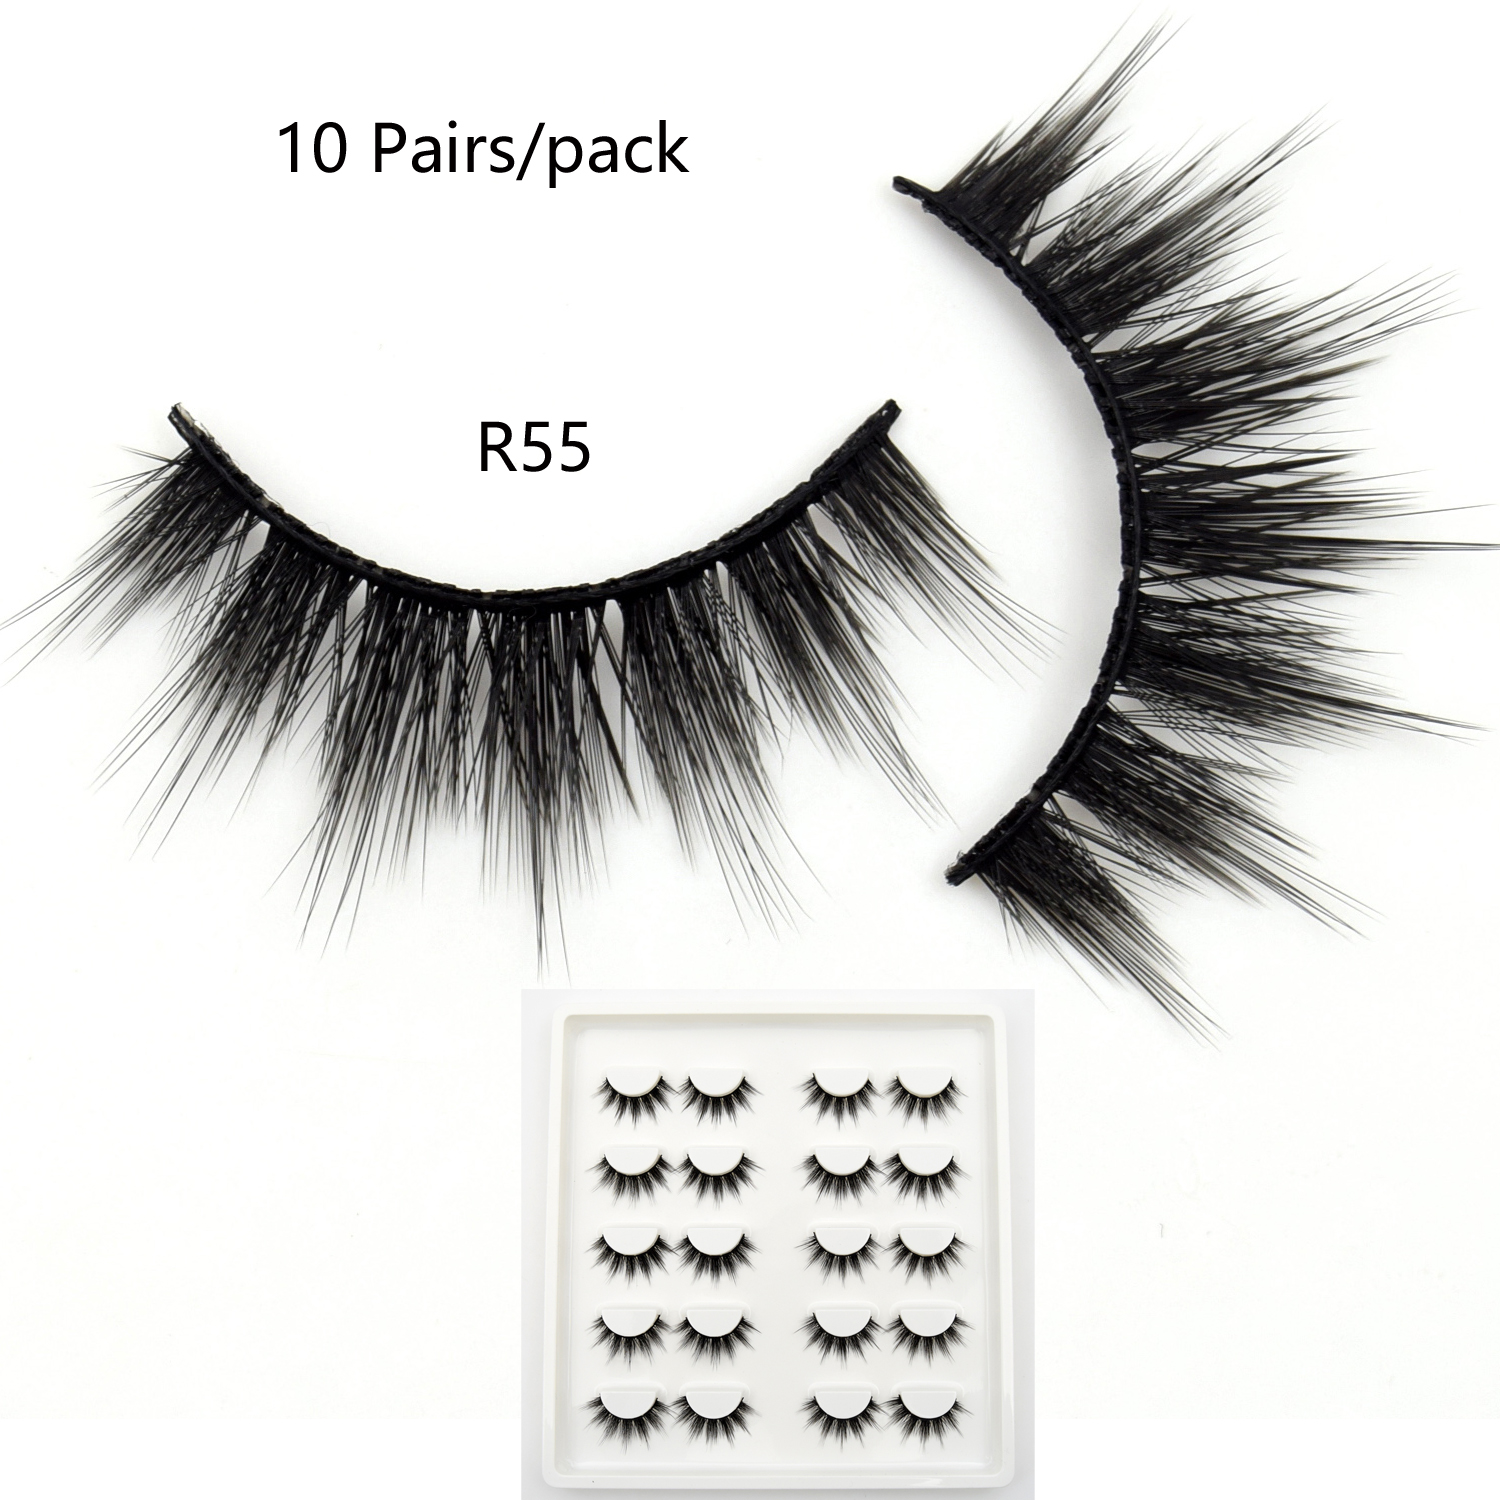 10 Pairs Faux Mink Lashes Bulk Natural Lashes Dramatic Lashes 3D False Eyelashes Handmade Full Strip Lashes R55 Makeup Eyelashes